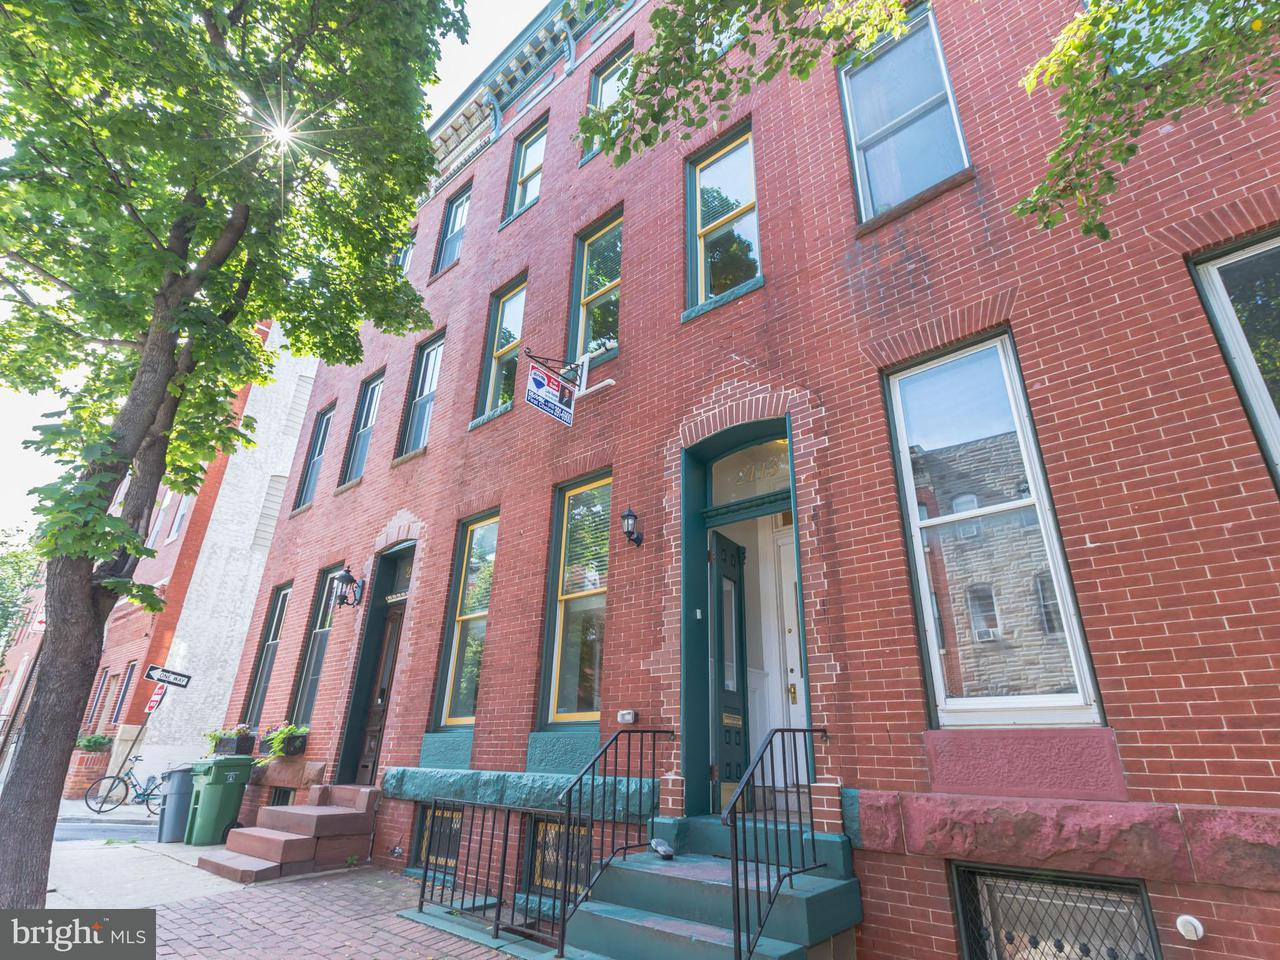 Other Residential for Sale at 2113 Pratt St E Baltimore, Maryland 21231 United States